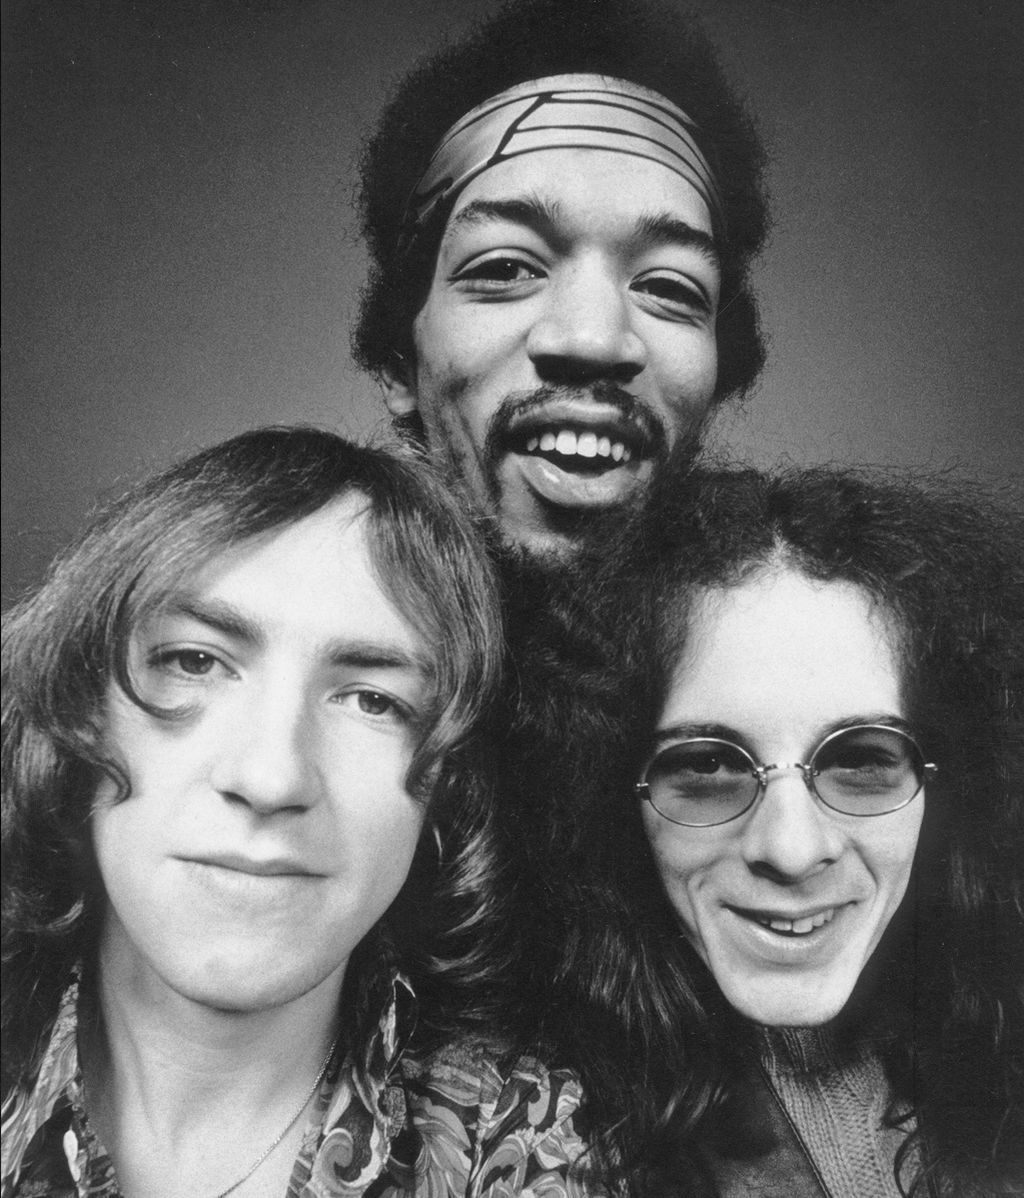 con-noel-redding-y-mitch-mitchell-en-LA-1969